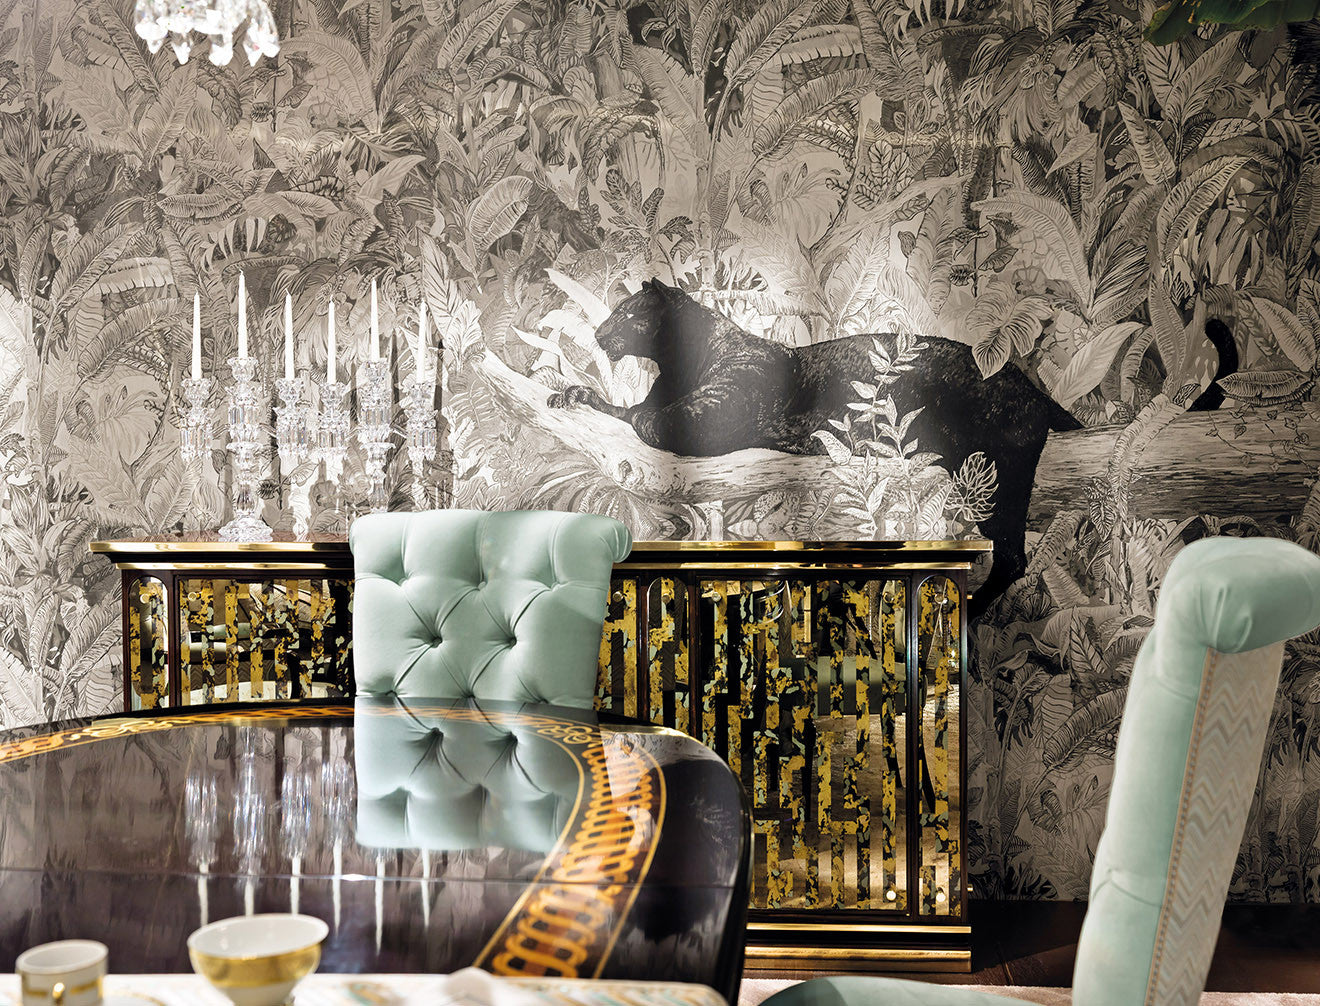 Provasi black panther wallpaper with gold sideboard and mint coloured dining chair